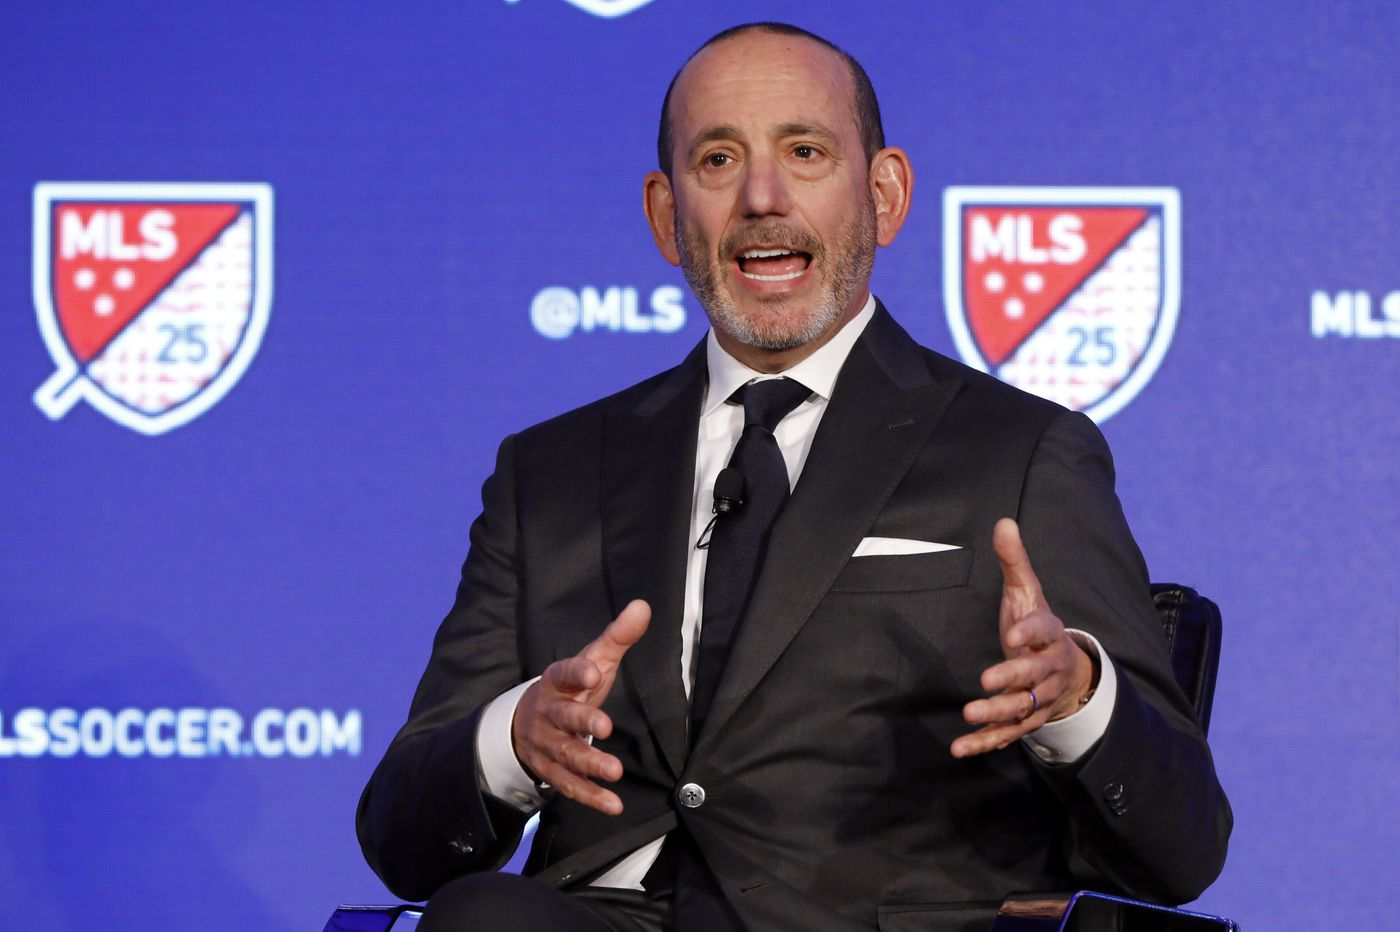 MLS offers to back off player pay cuts in exchange for 2-year extension of CBA